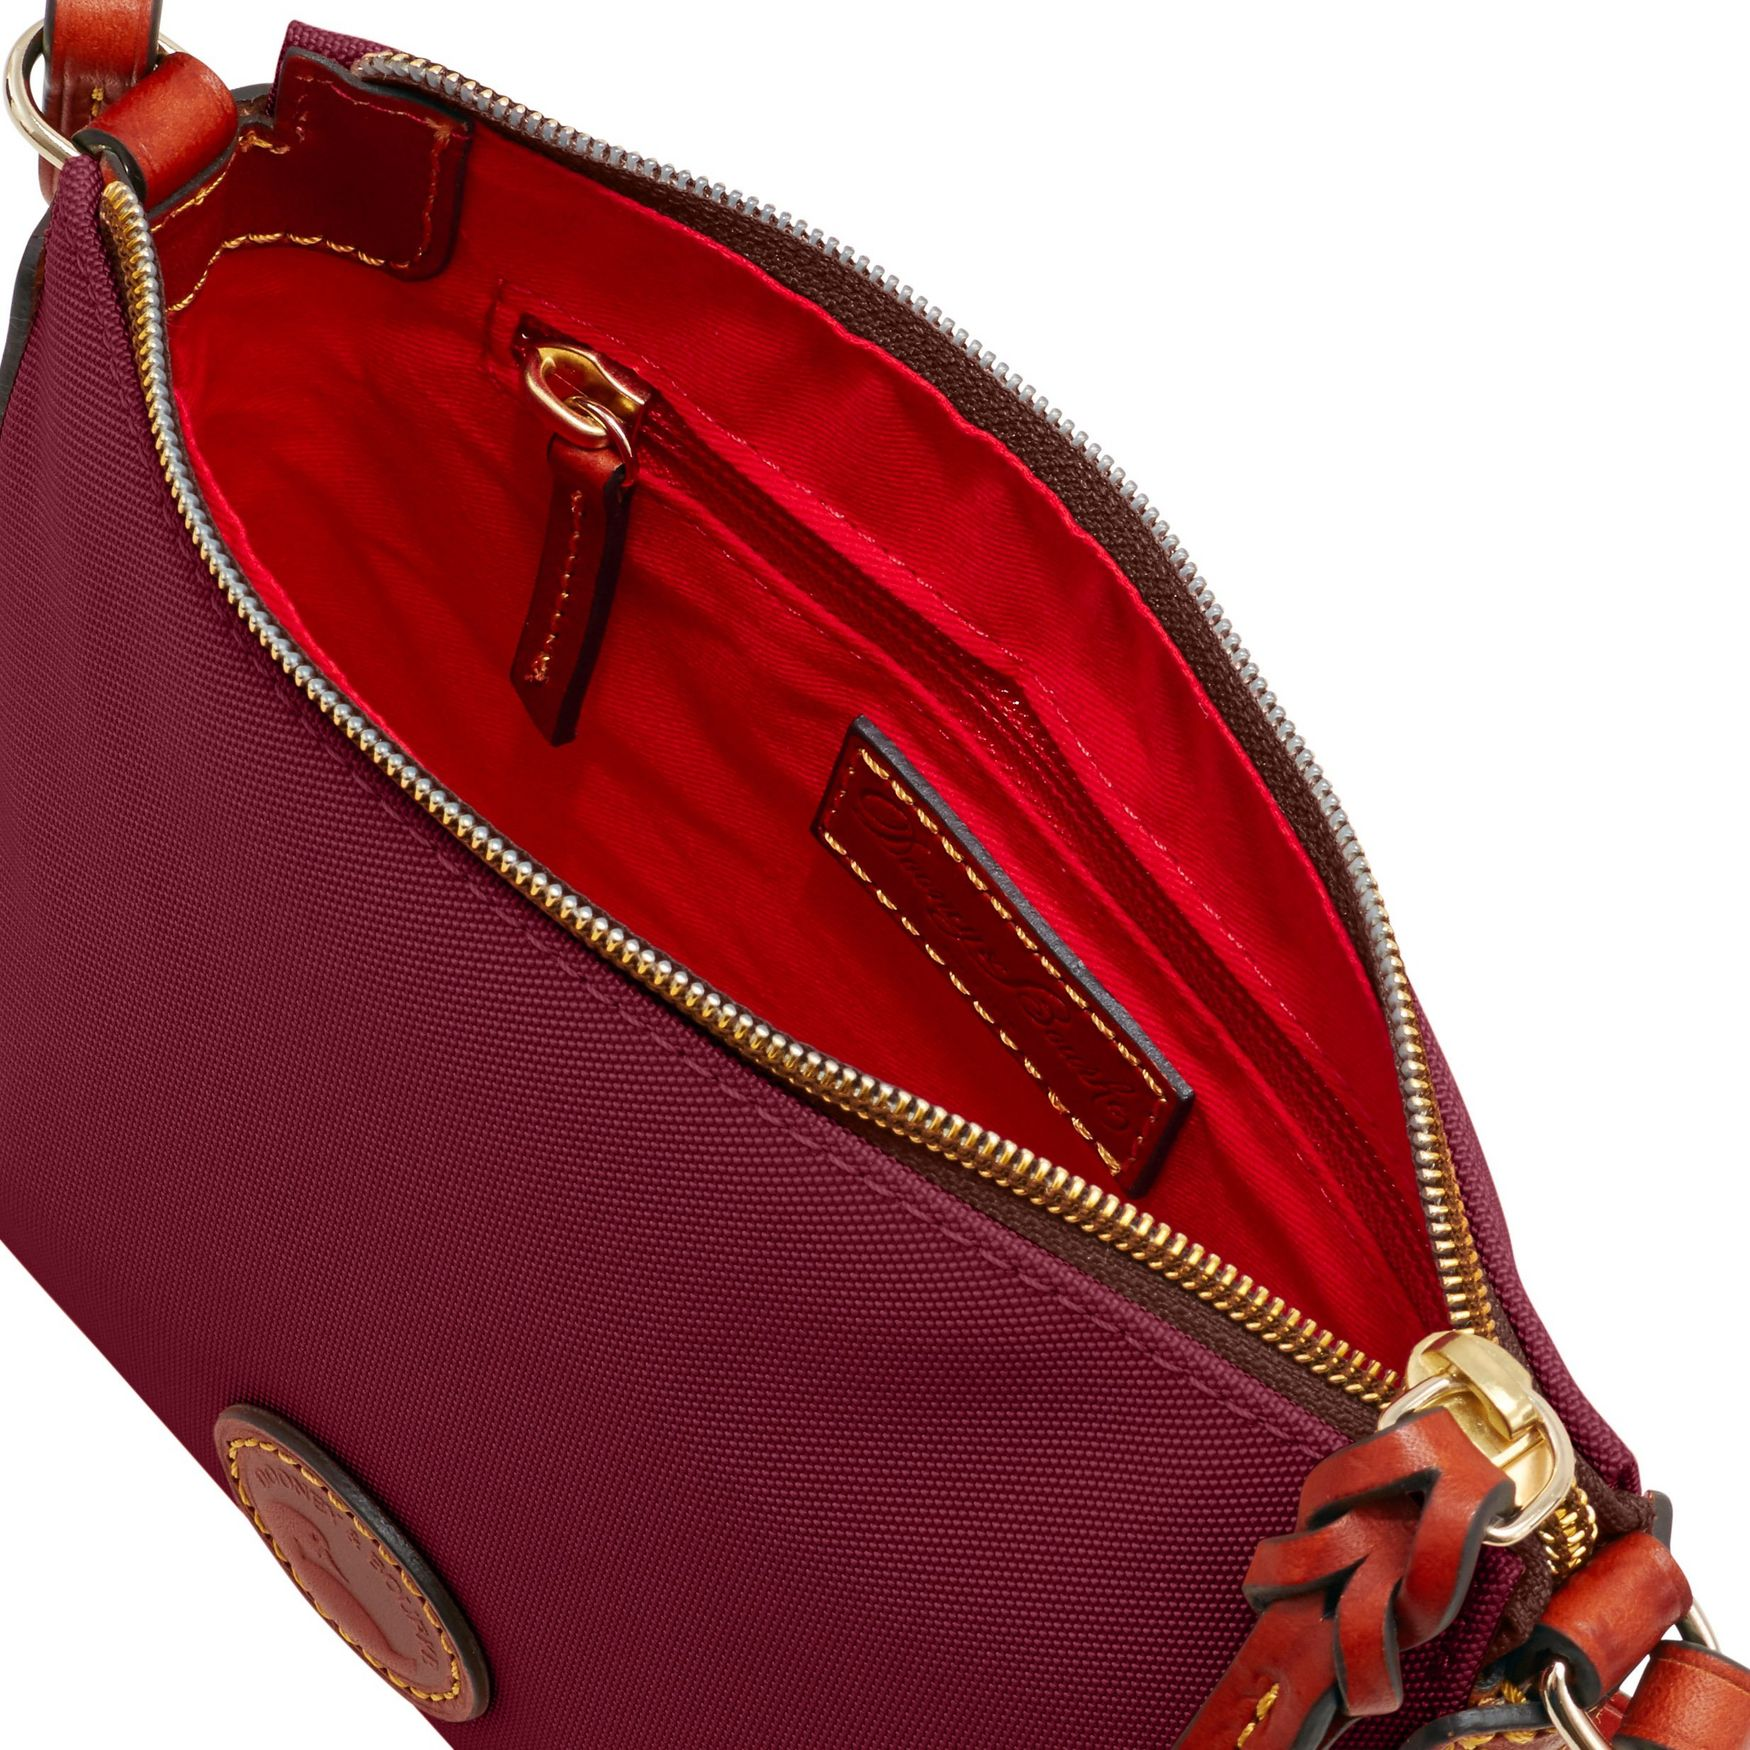 Dooney-amp-Bourke-Nylon-Crossbody-Pouchette-Shoulder-Bag thumbnail 18